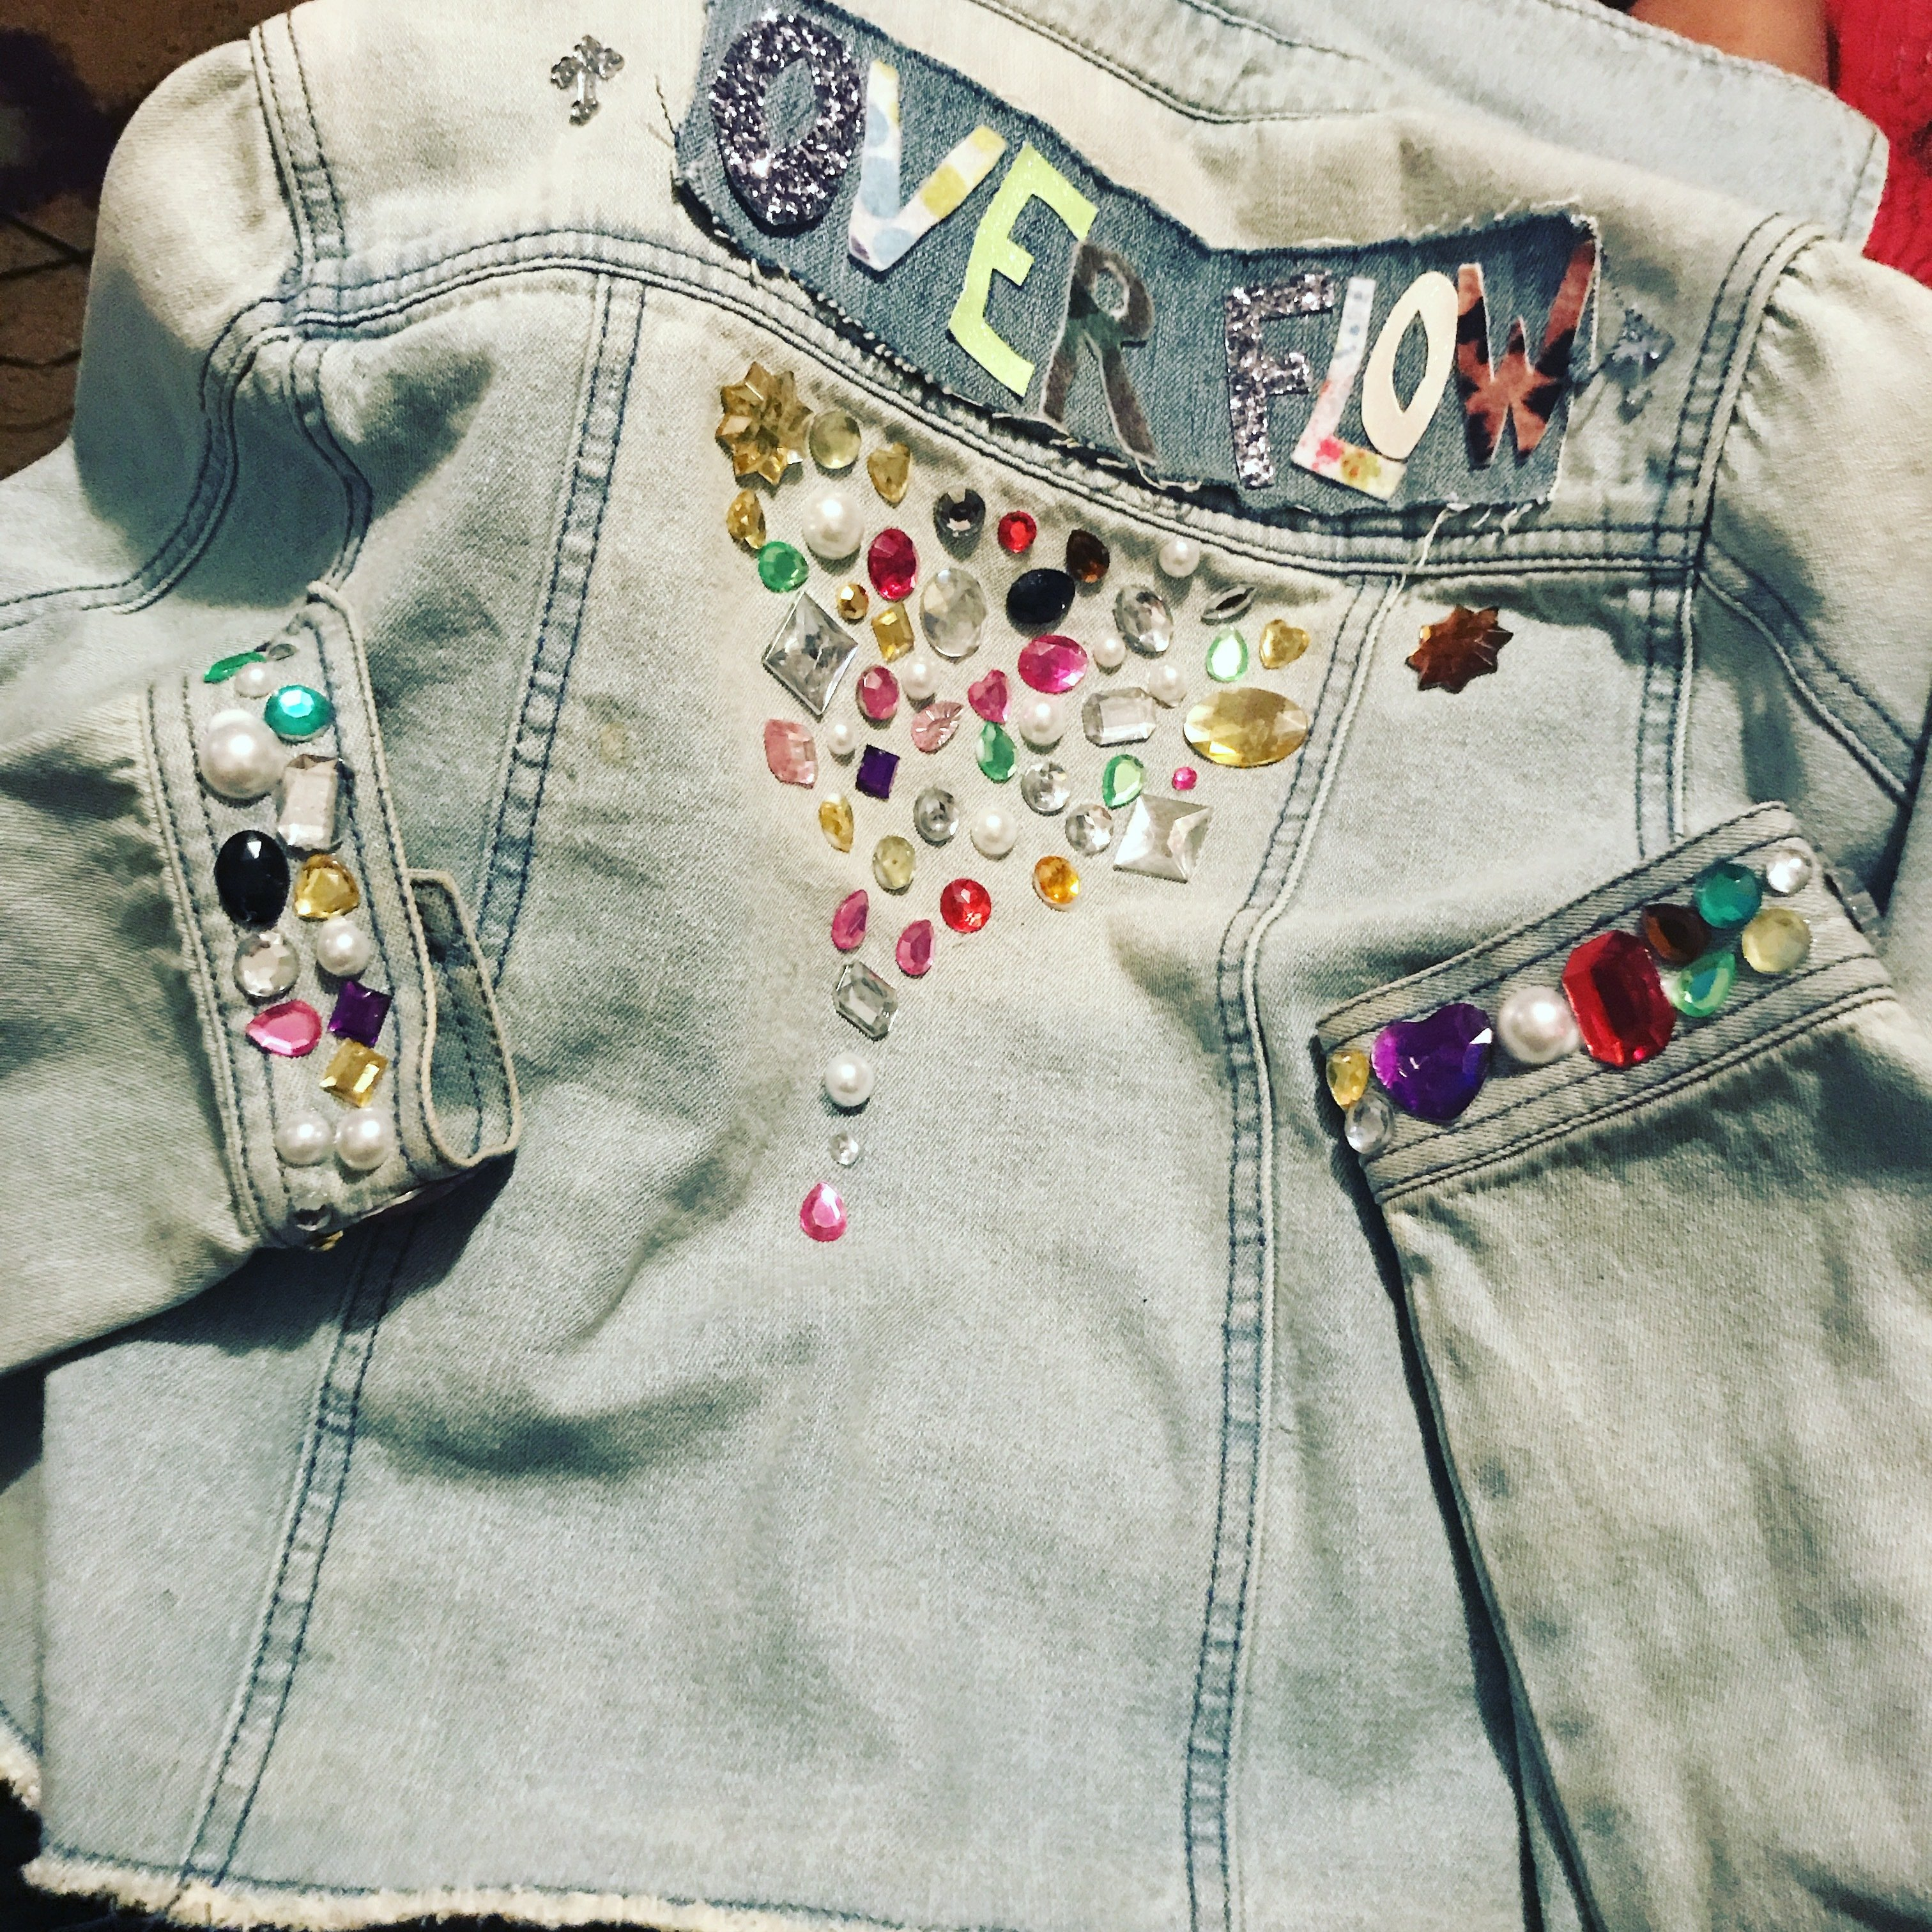 Prophetic Gear - Redeemed Jean Jacket (customize) no 2 Jackets the same